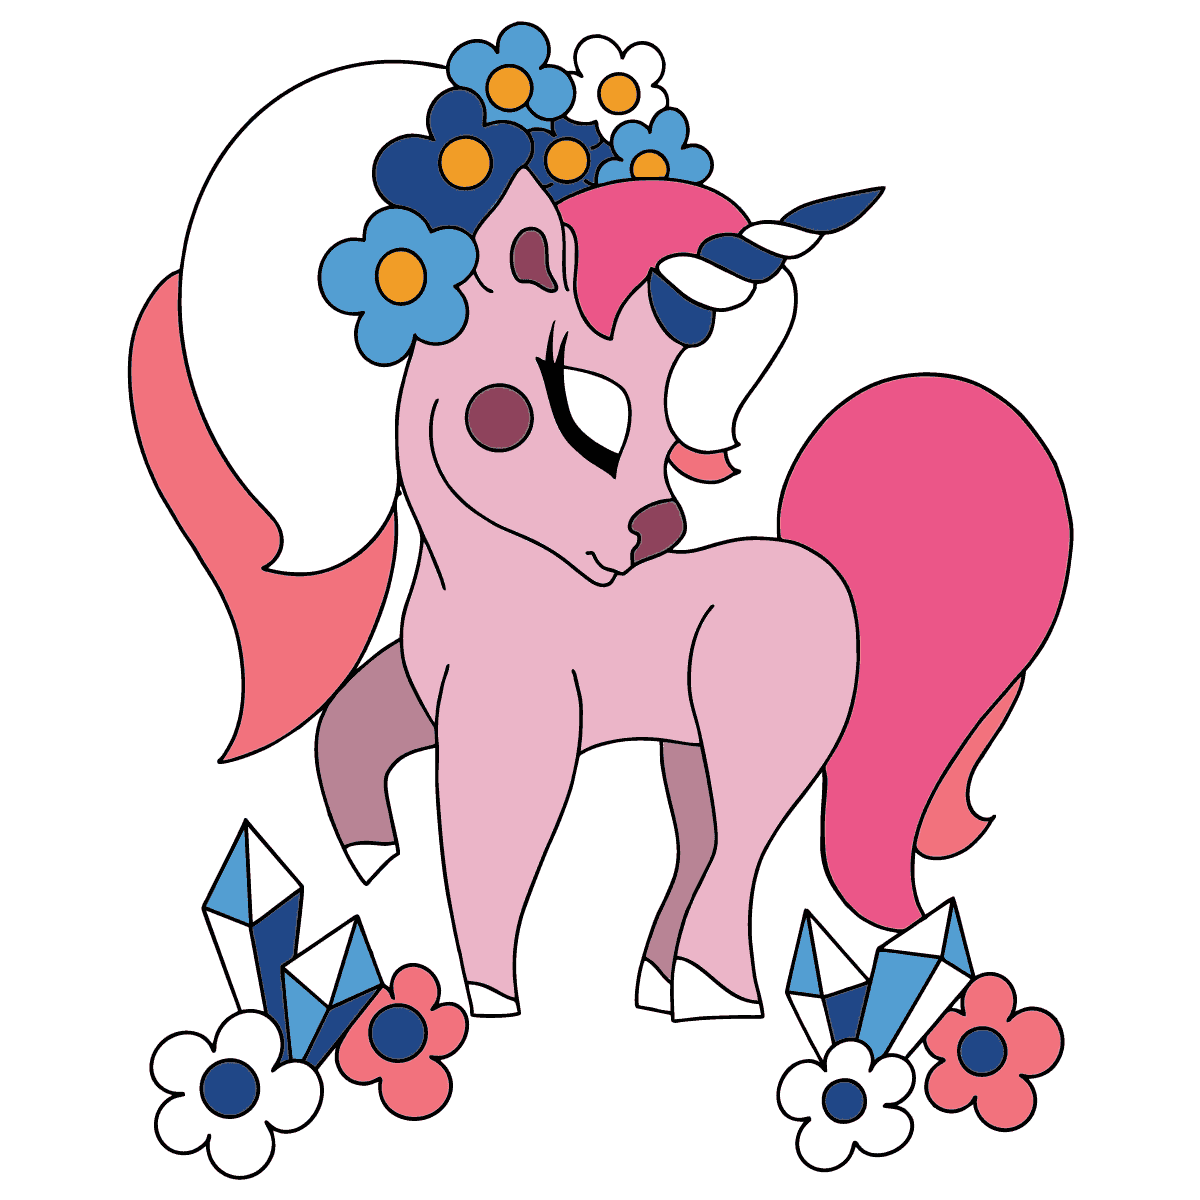 Complex Coloring Page - A Dreaming Unicorn